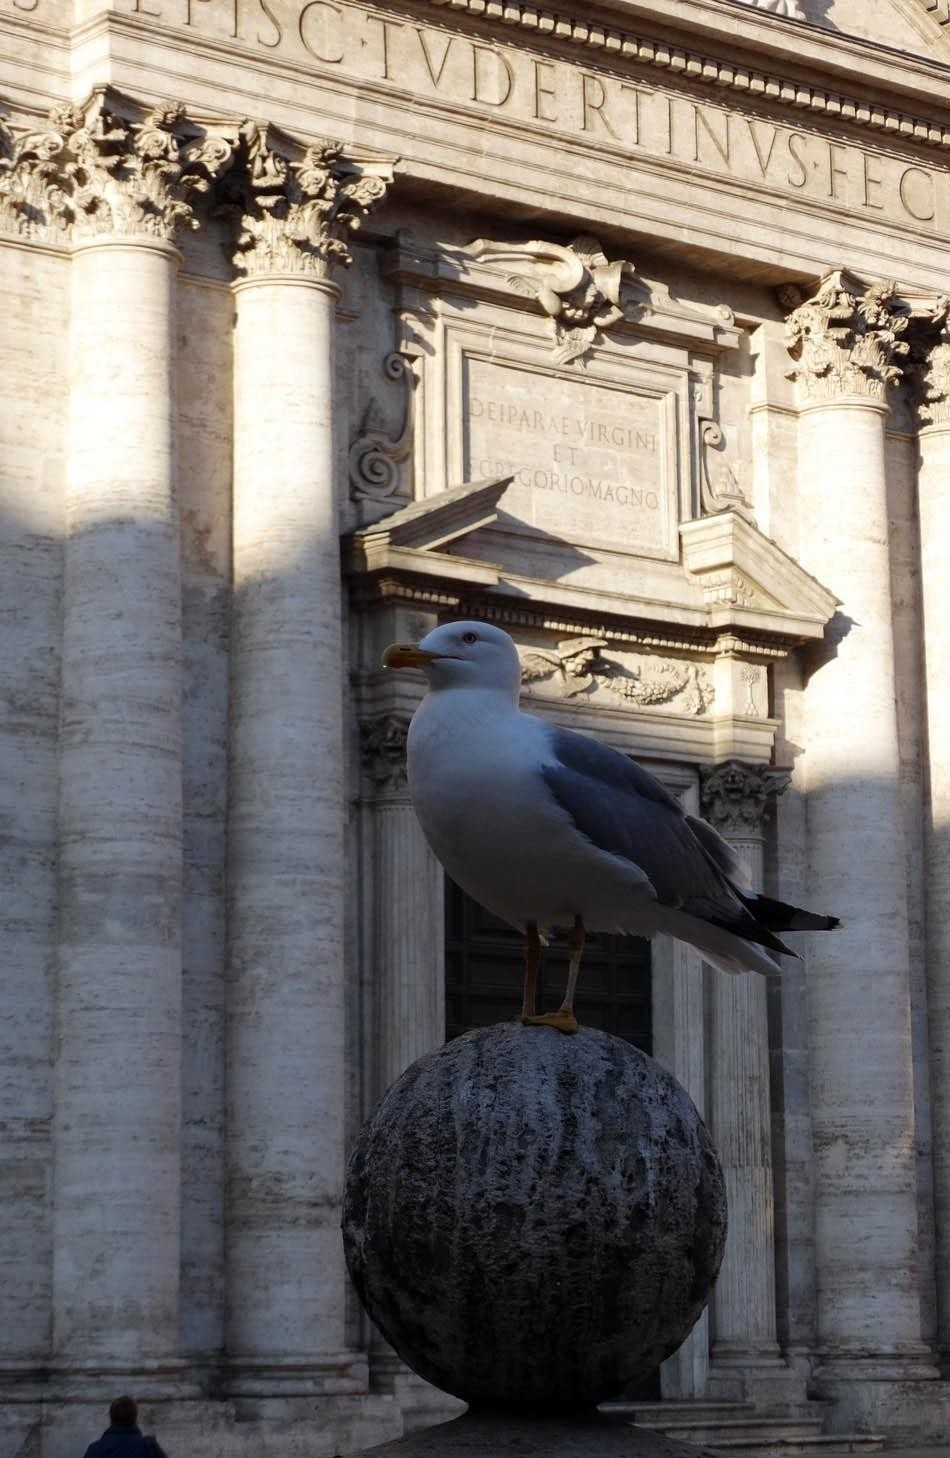 Pigeon at Piazza della Chiesa Nuova, Rome | What to do in a rainy day in Rome - the Eternal City1